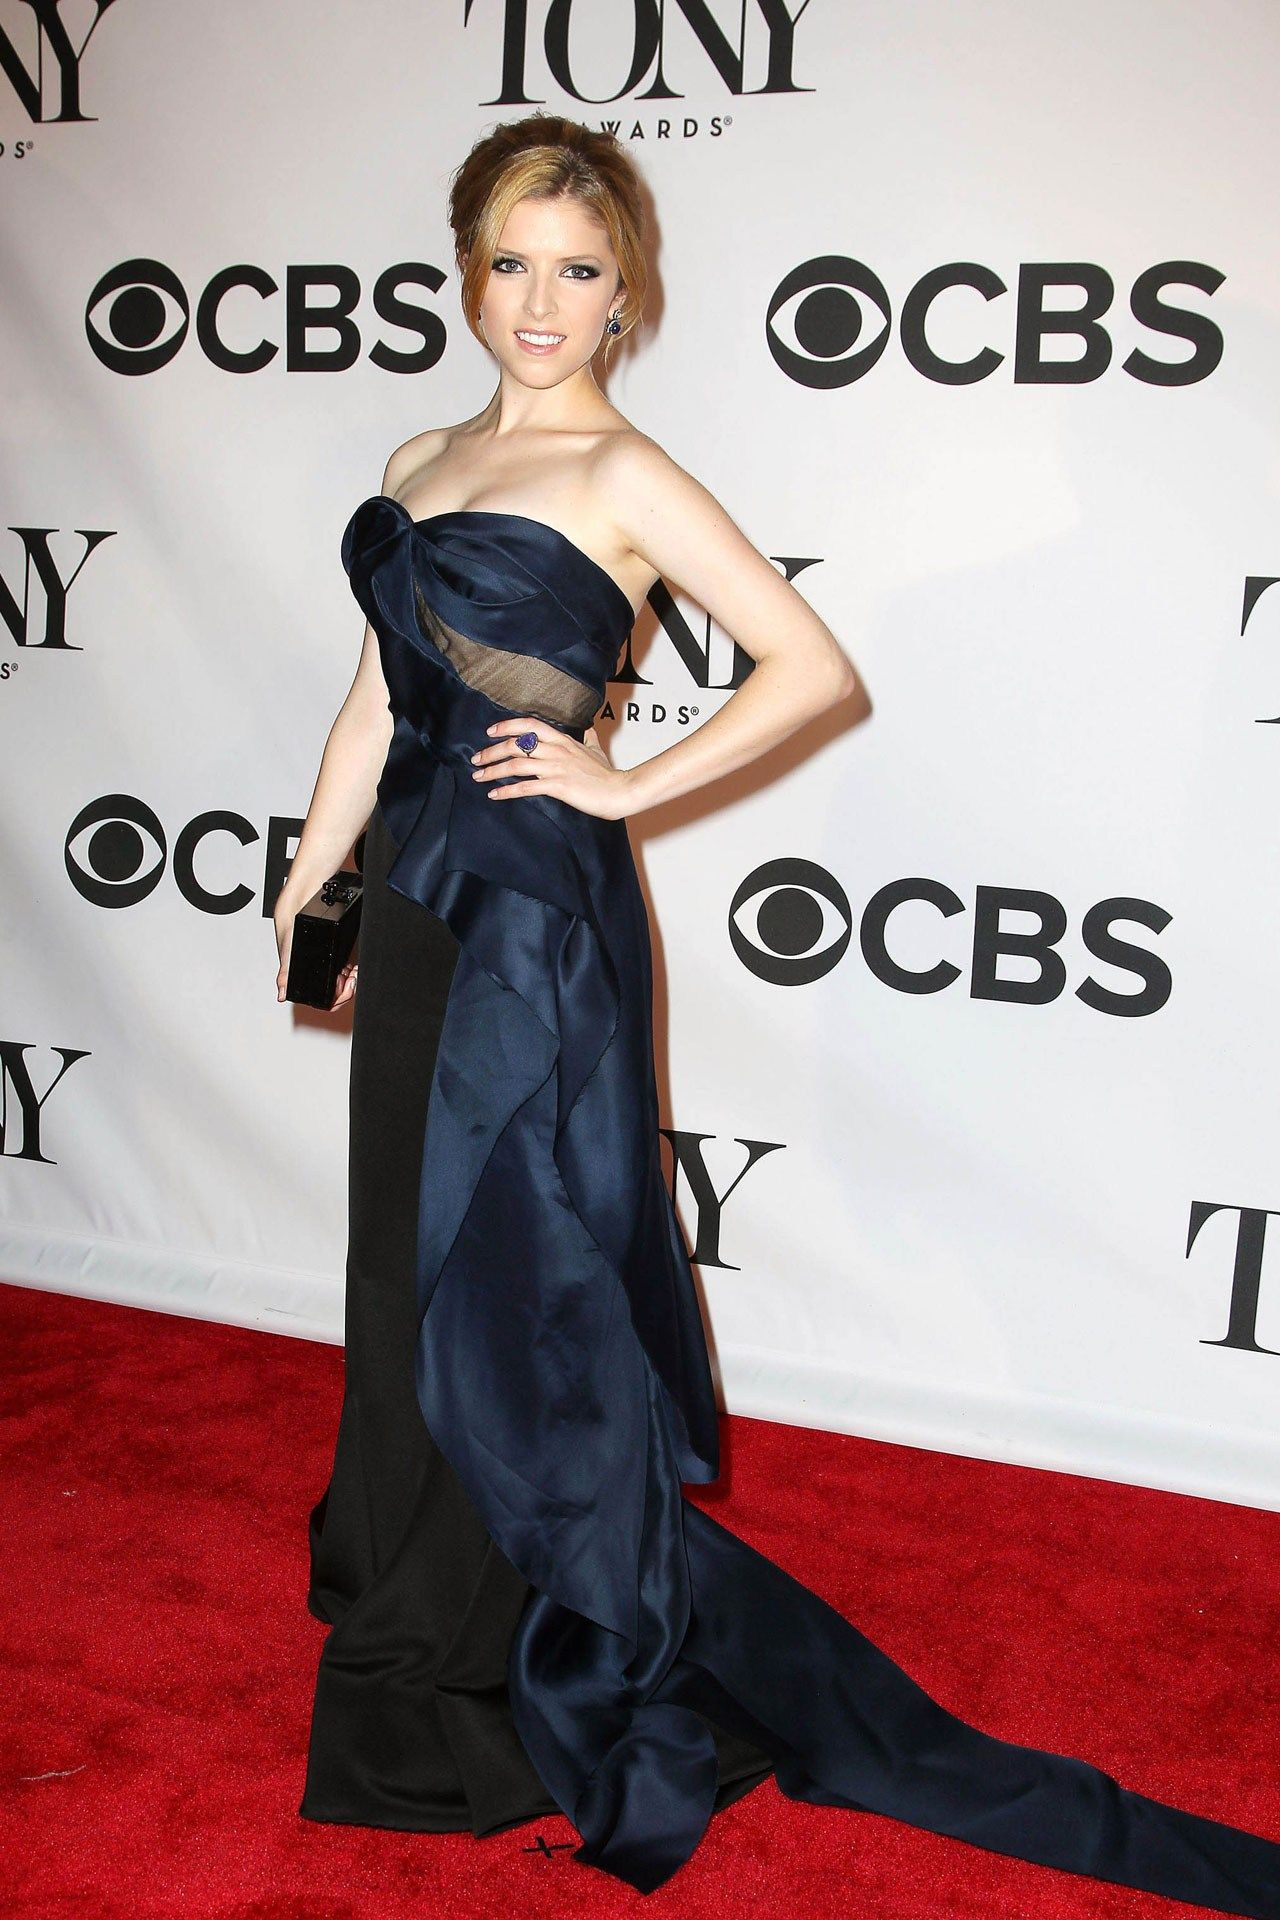 Anna Kendrick wore a Donna Karan Atelier dress with jewellery by Amrapali.